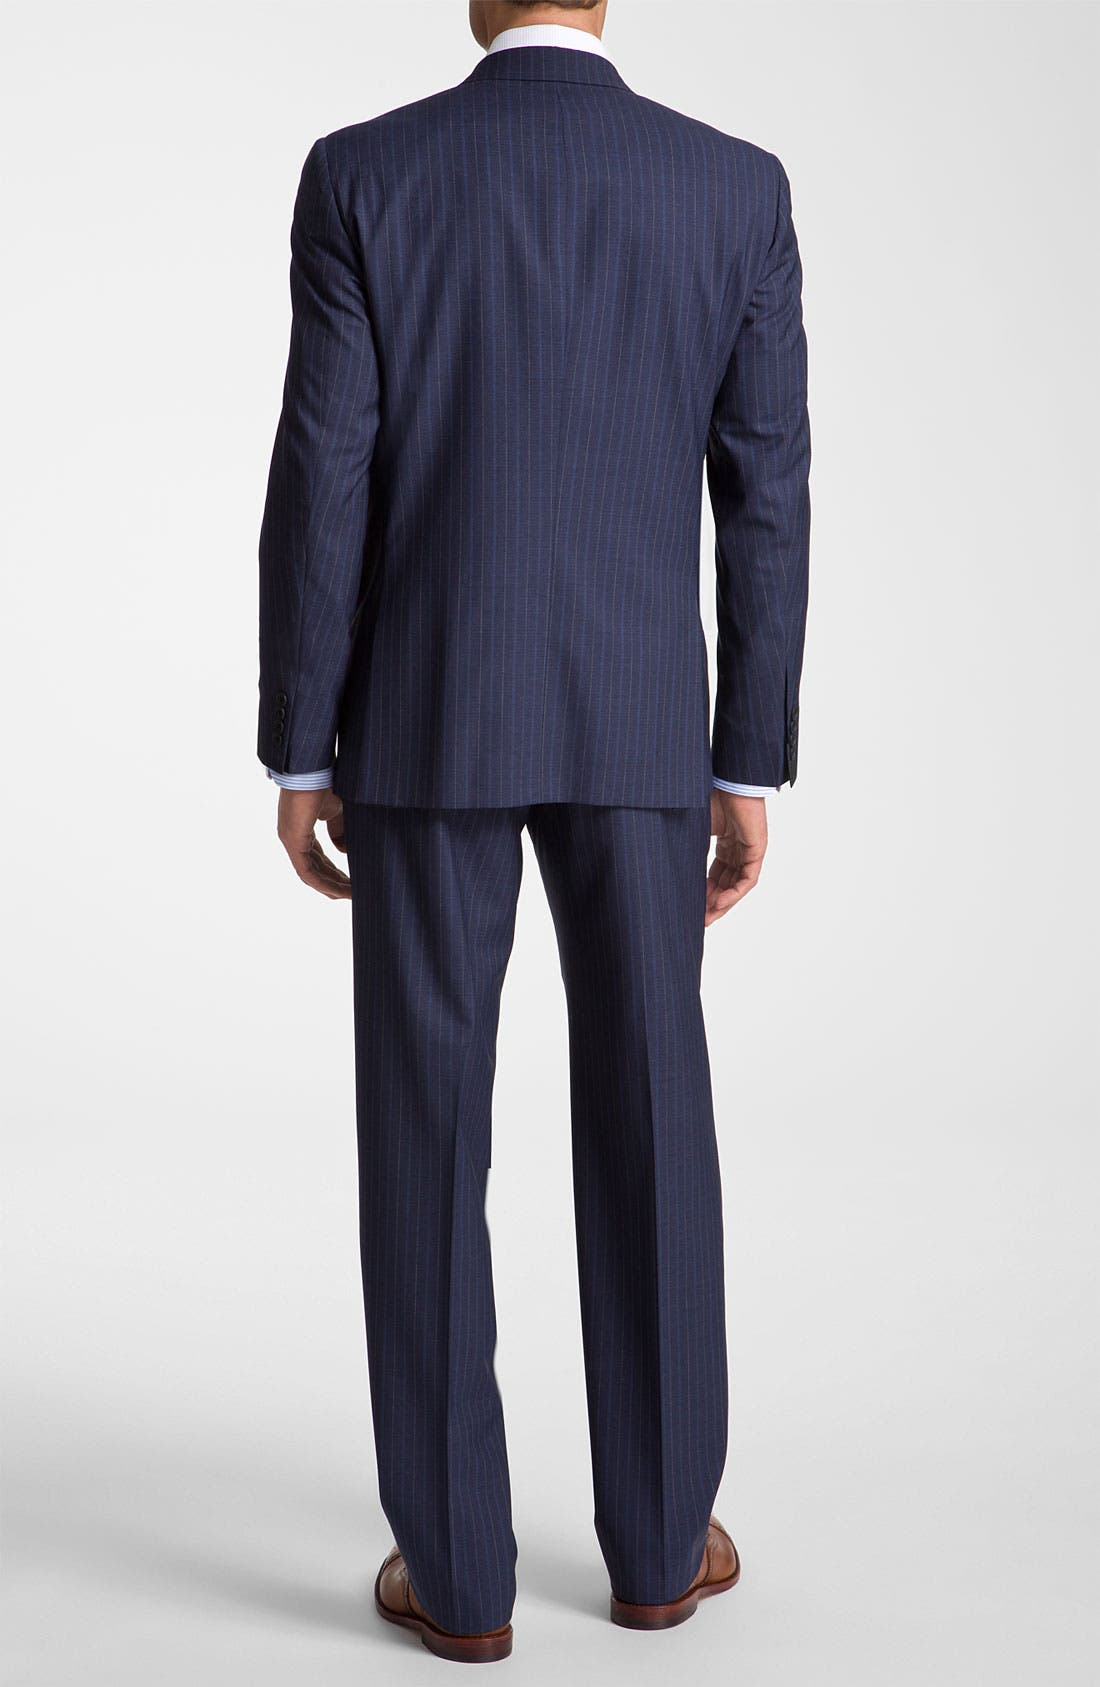 Alternate Image 3  - Robert Talbott Navy Pinstripe Wool Suit